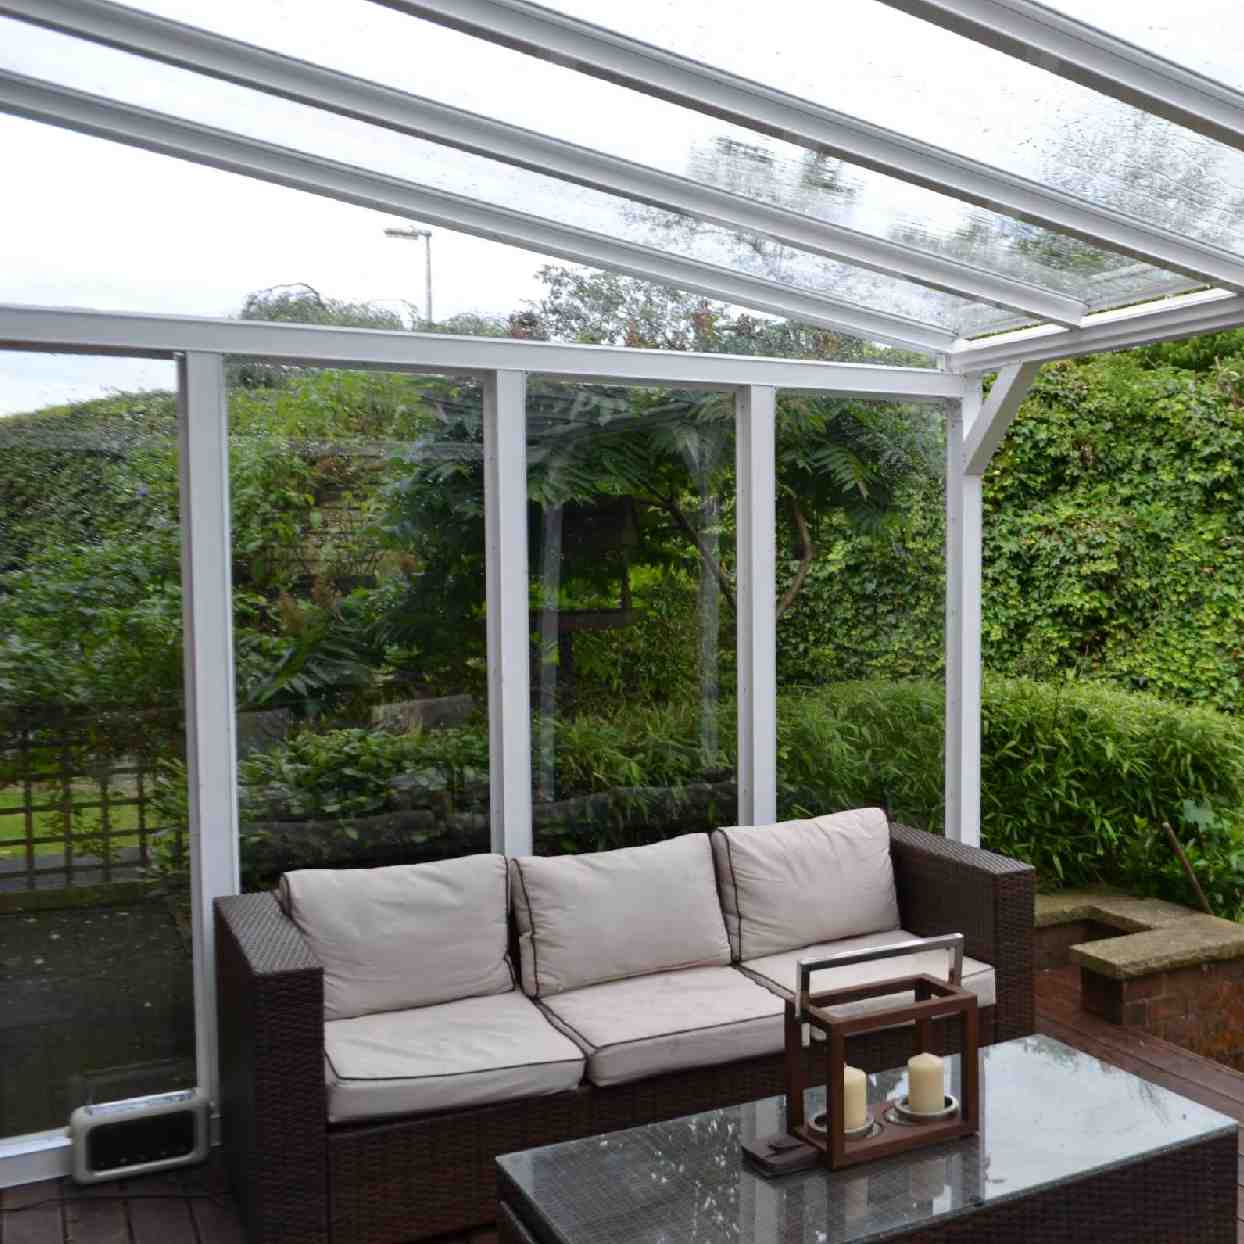 Buy Omega Verandah with 16mm Polycarbonate Glazing - 4.8m (W) x 4.5m (P), (3) Supporting Posts online today